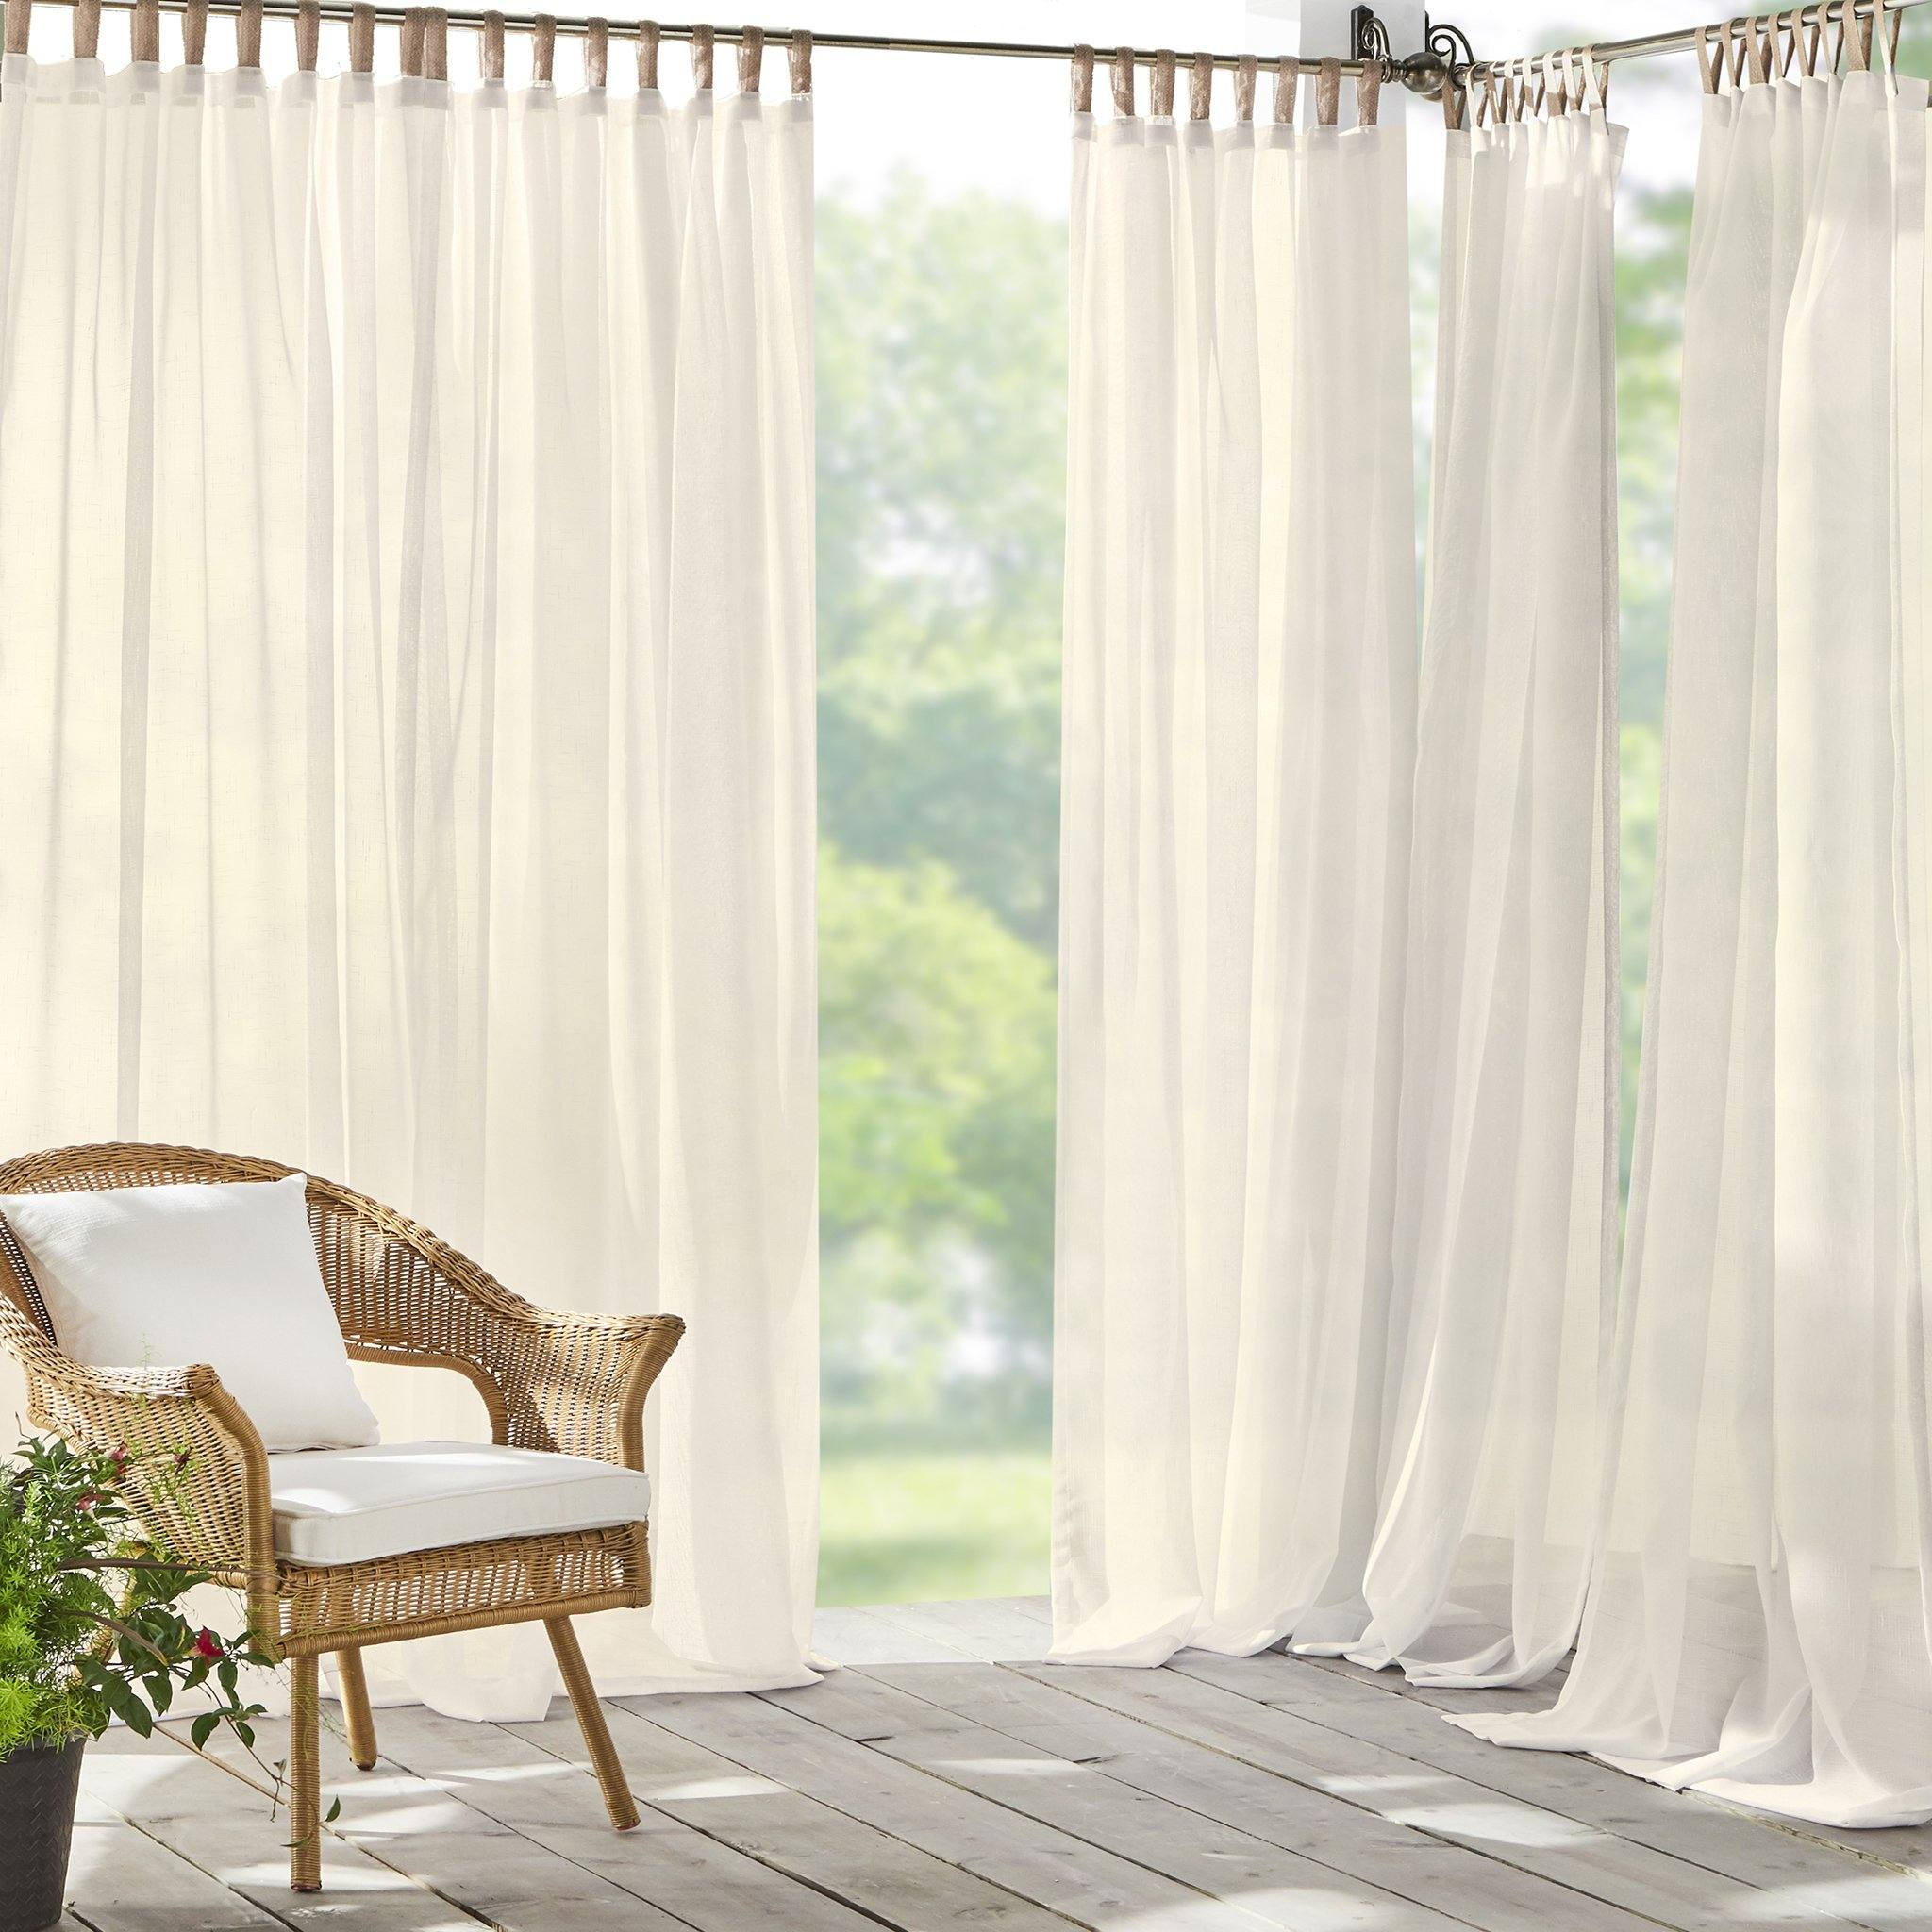 Darien Solid Indoor Outdoor Sheer Tab Top Window Curtain Panel Elrene Home Fashions